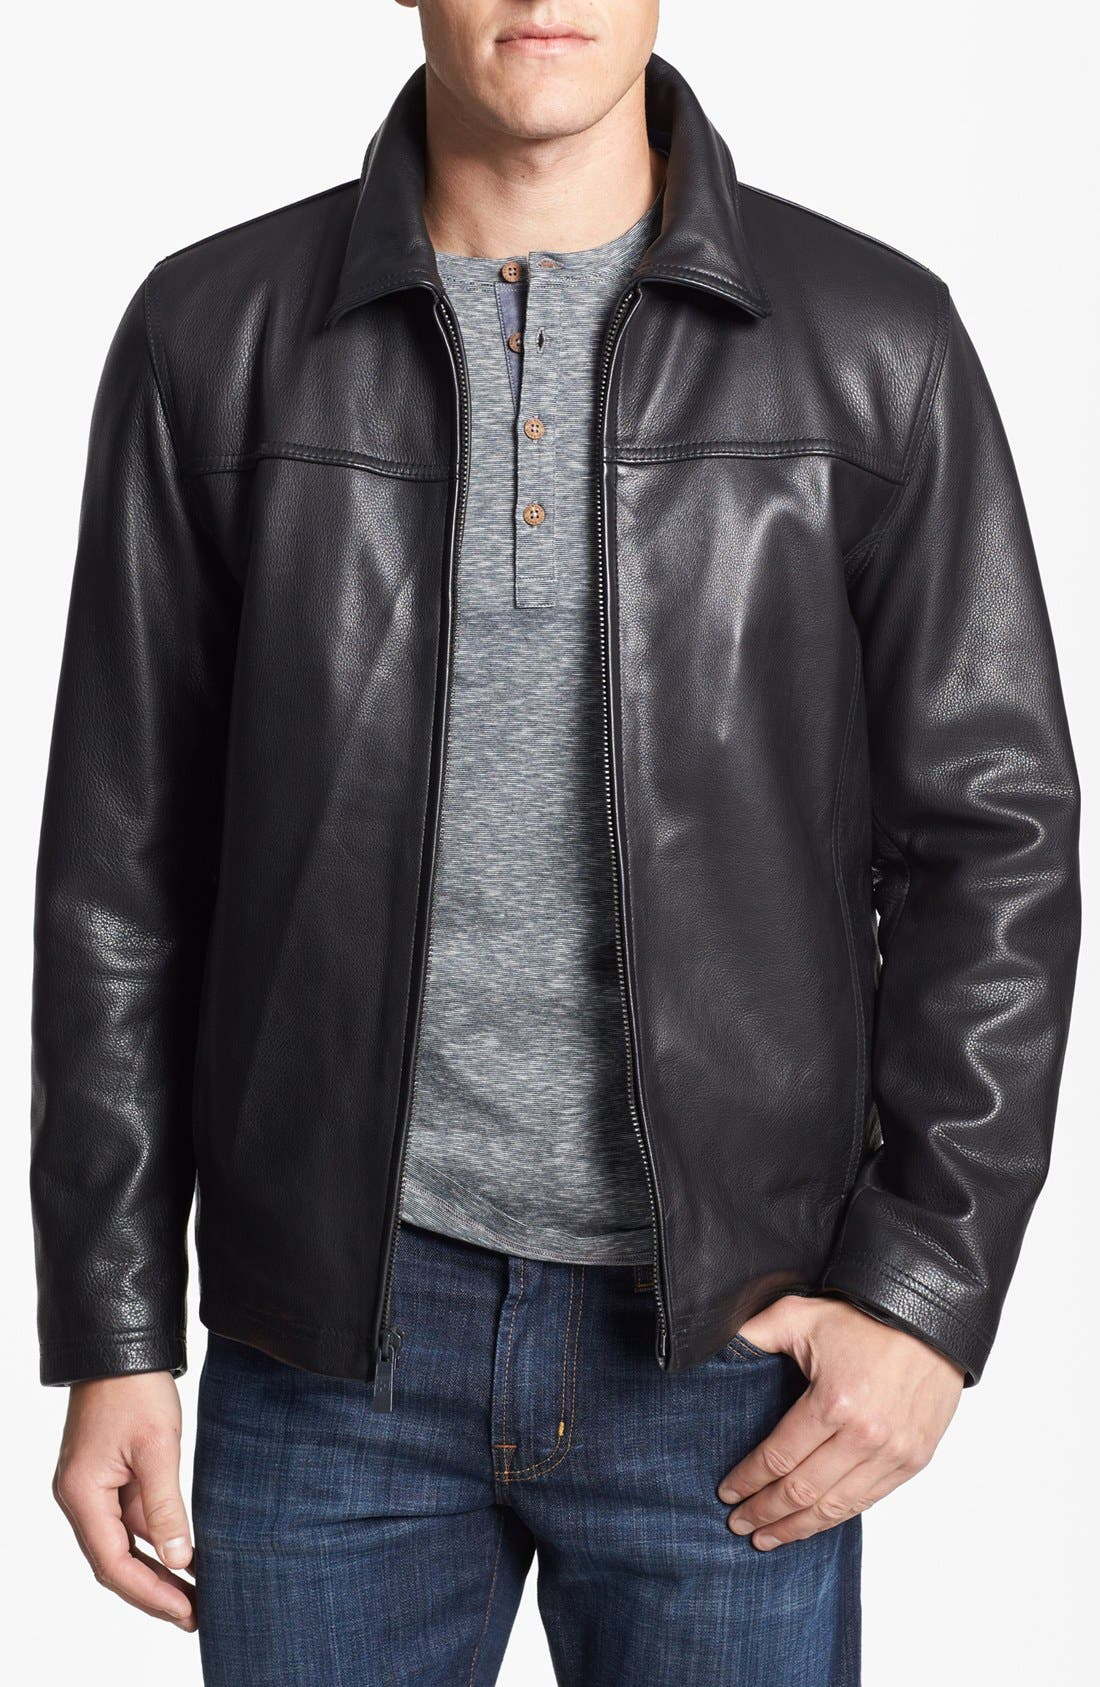 Alternate Image 1 Selected - Vince Camuto Leather Jacket